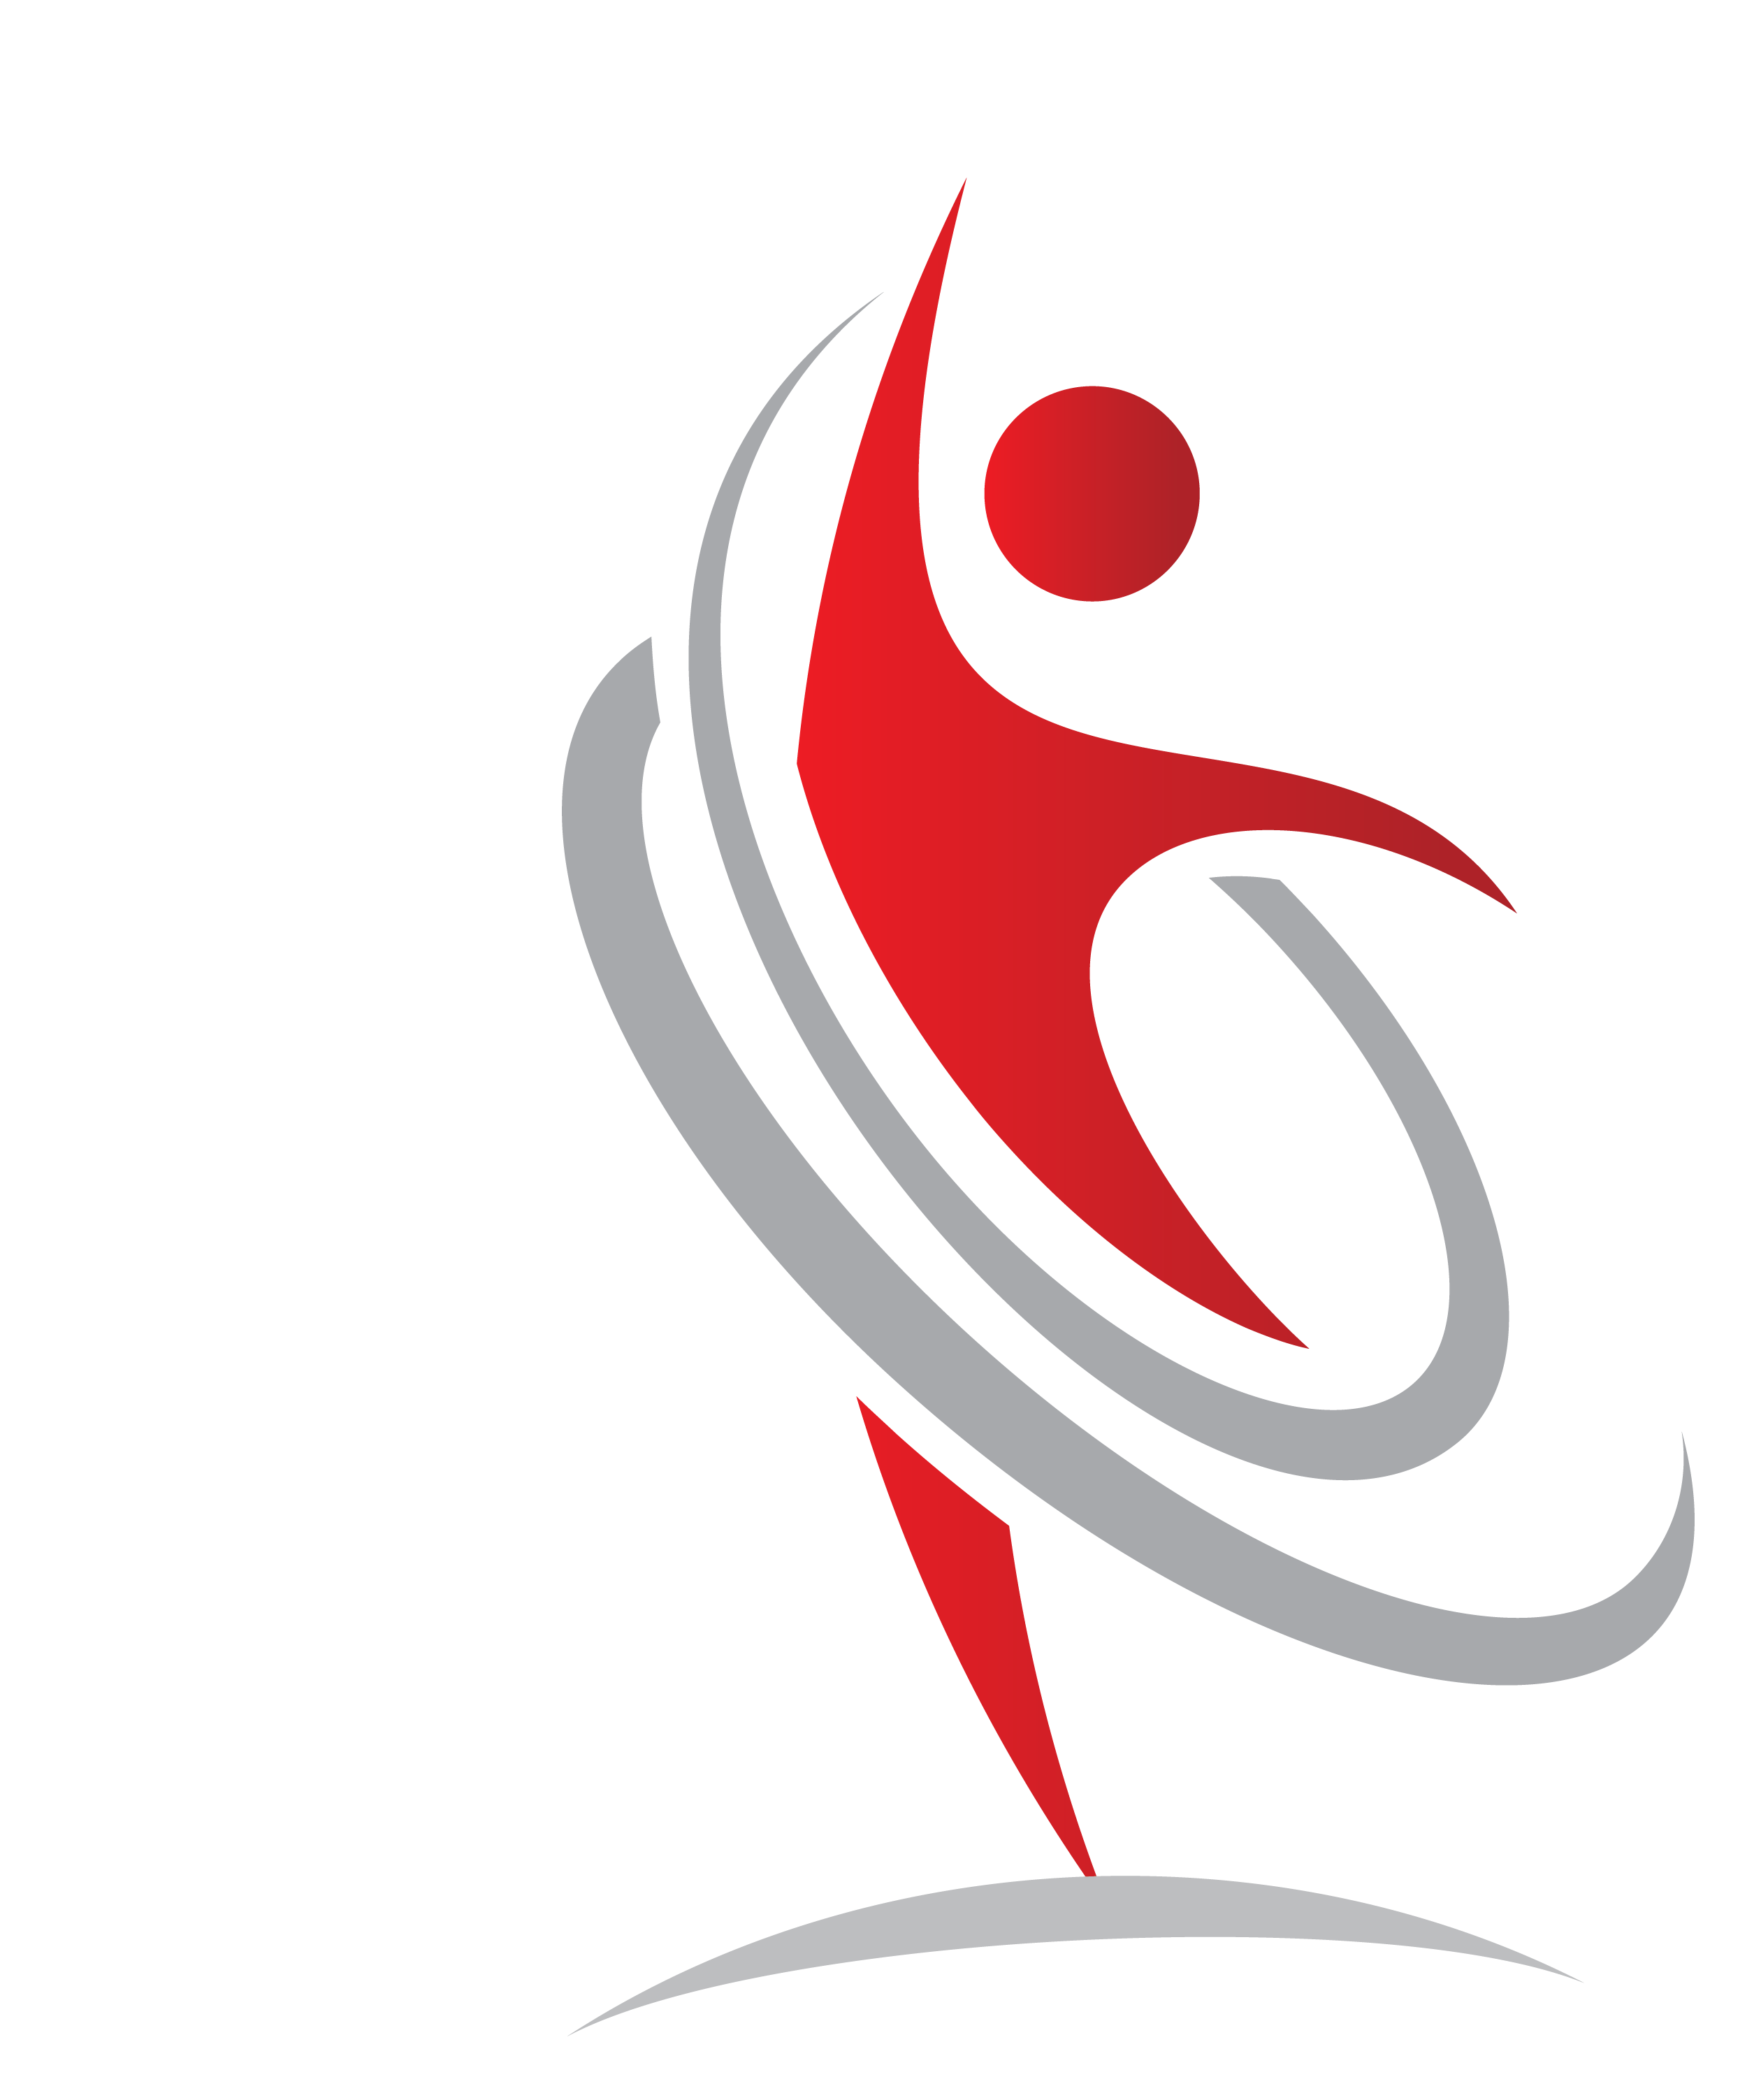 Physiotherapy logo png 7 » PNG Image.